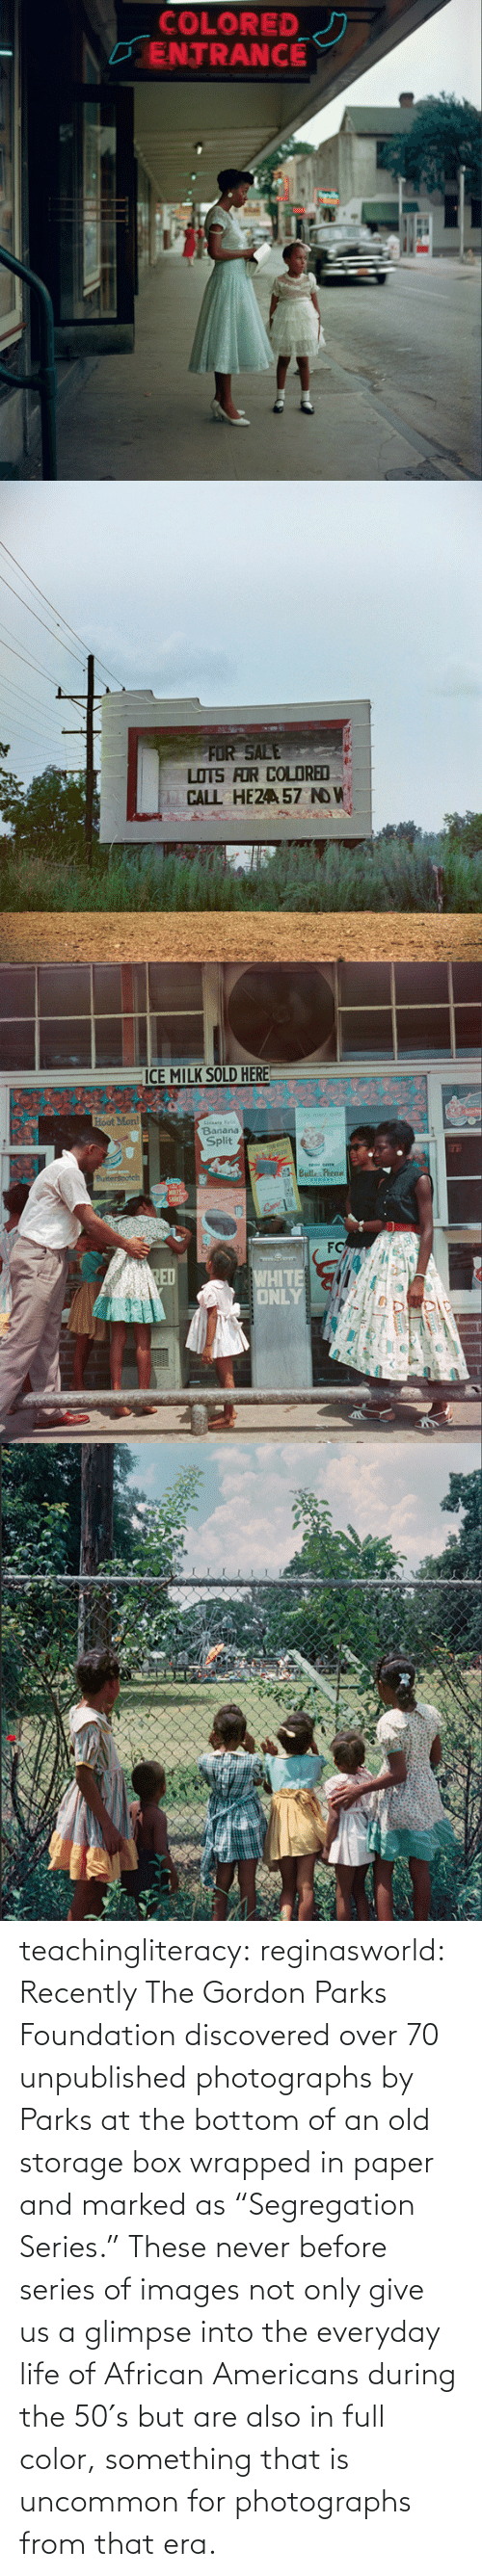 """African Americans: teachingliteracy:  reginasworld: Recently The Gordon Parks Foundation discovered over 70 unpublished photographs by Parks at the bottom of an old storage box wrapped in paper and marked as """"Segregation Series."""" These never before series of images not only give us a glimpse into the everyday life of African Americans during the 50′s but are also in full color, something that is uncommon for photographs from that era."""